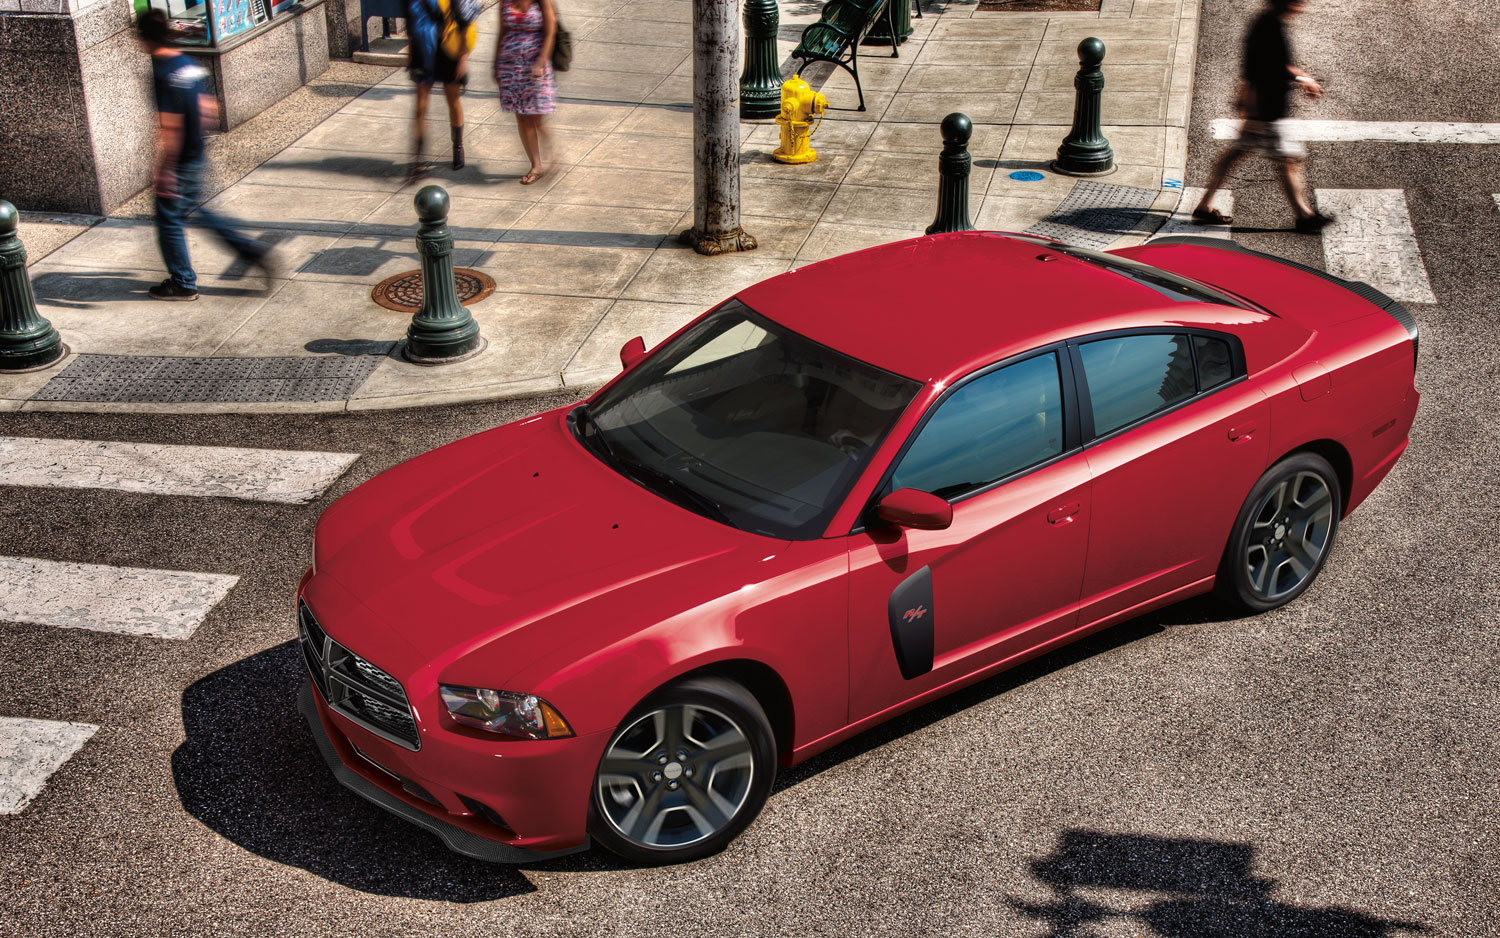 2012 Dodge Charger Redline Front Three Quarters View1